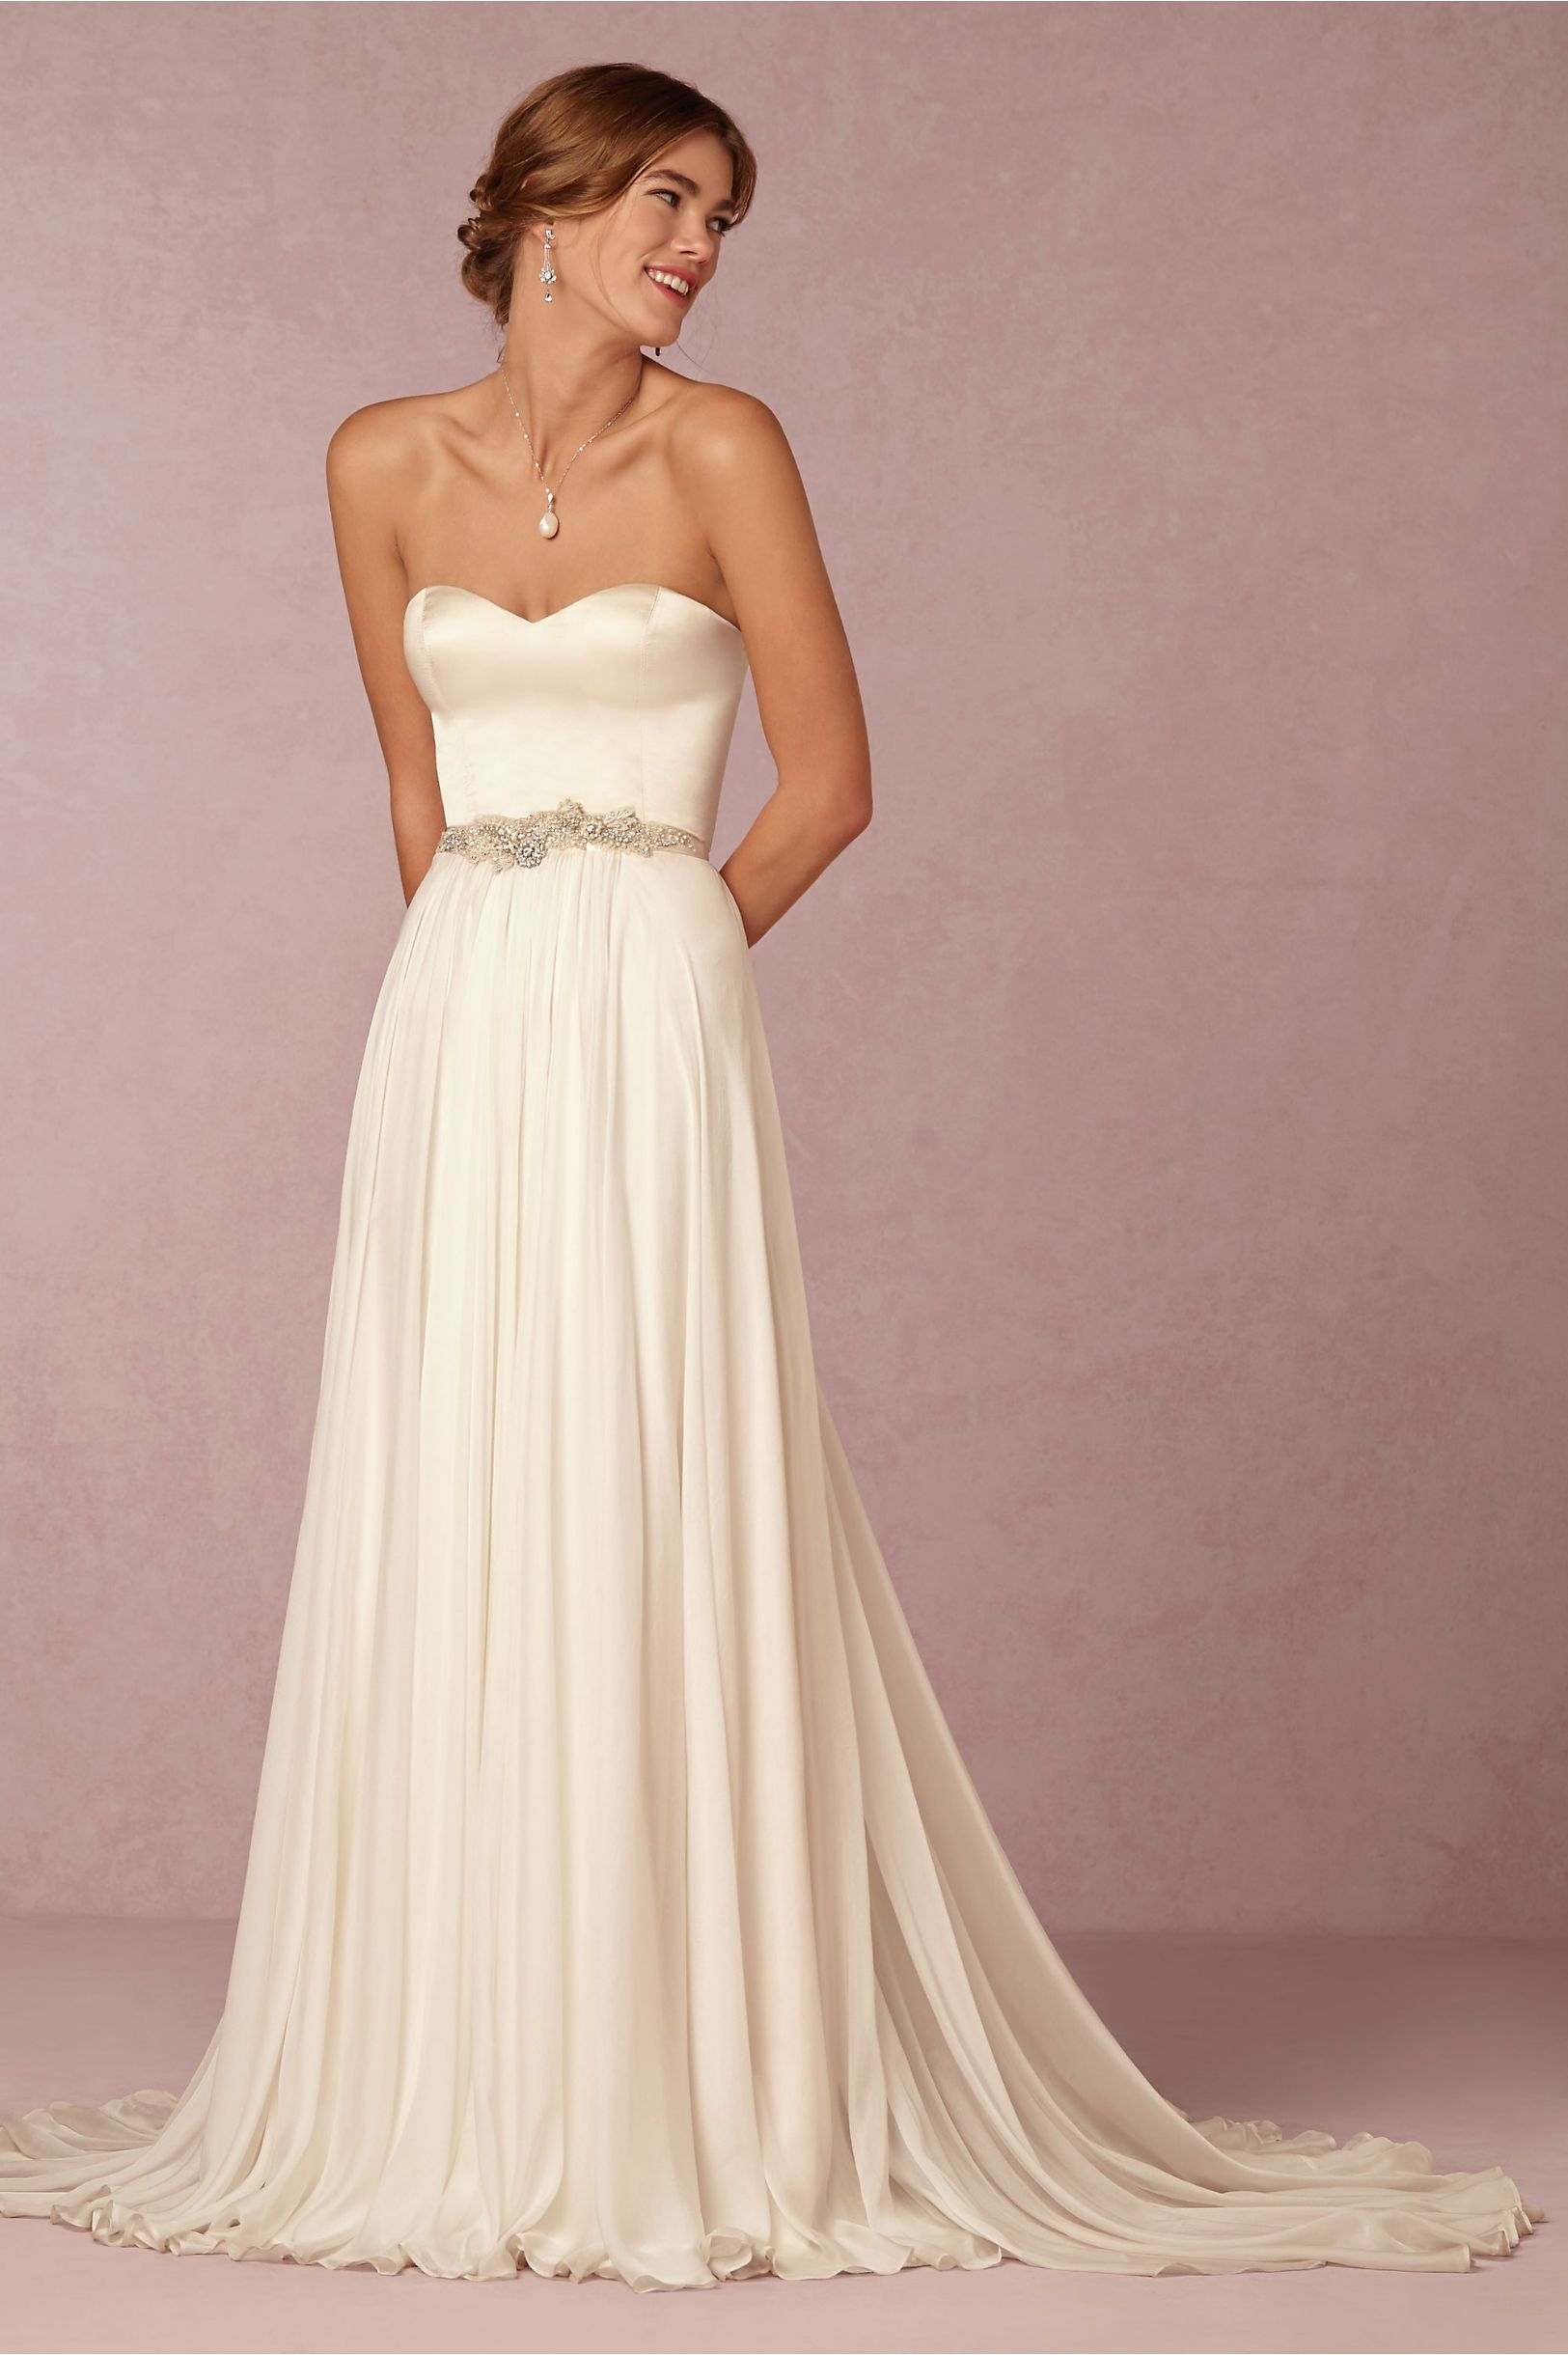 Darla camisole and delia maxi skirt in new at bhldn yes to the